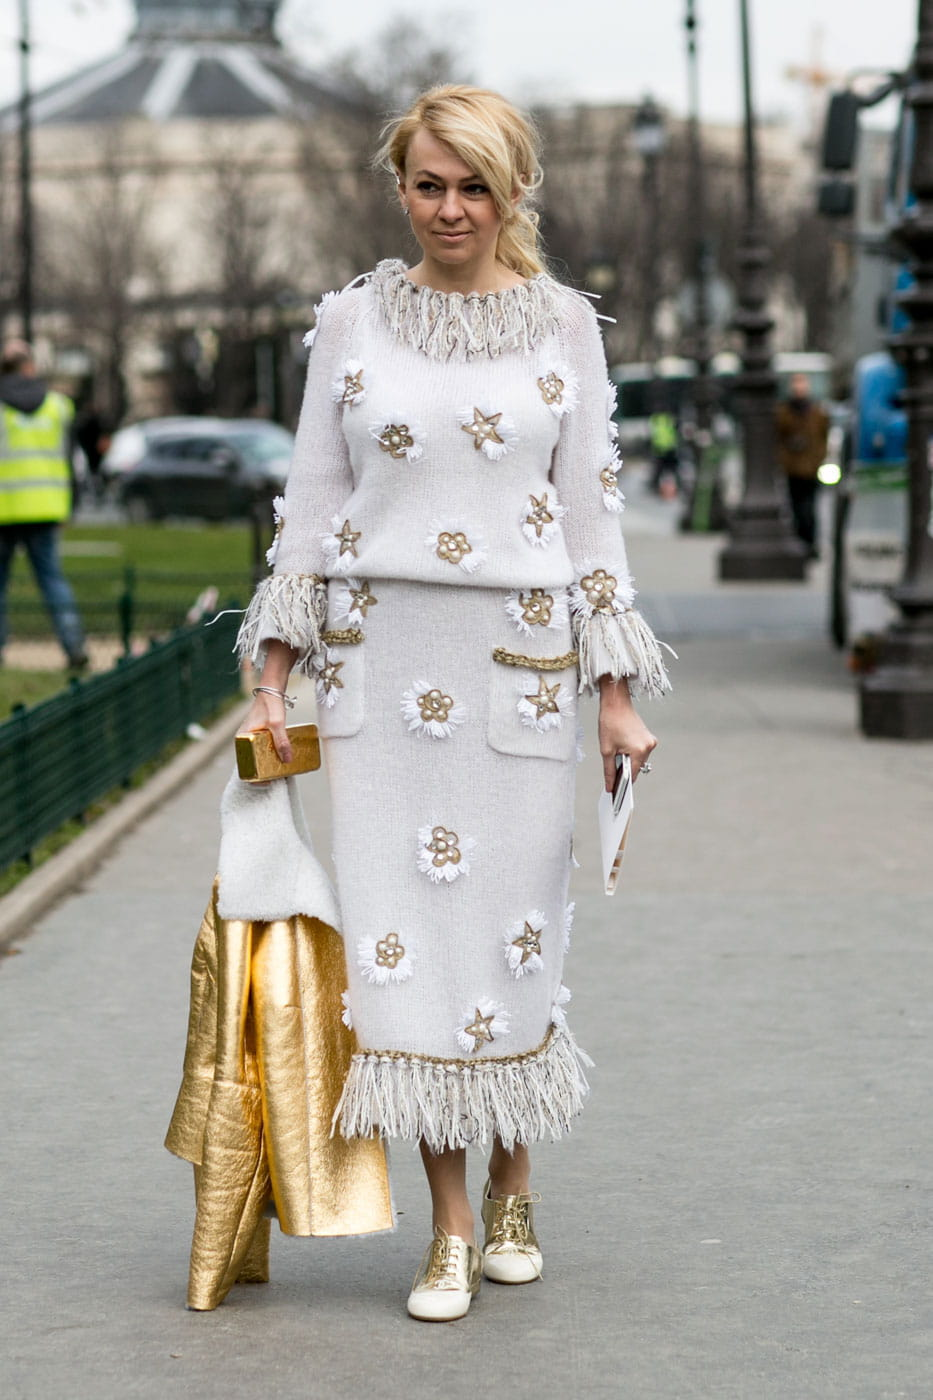 Street Style D Fil S Haute Couture Golden Haute Couture Printemps T 2015 Street Style